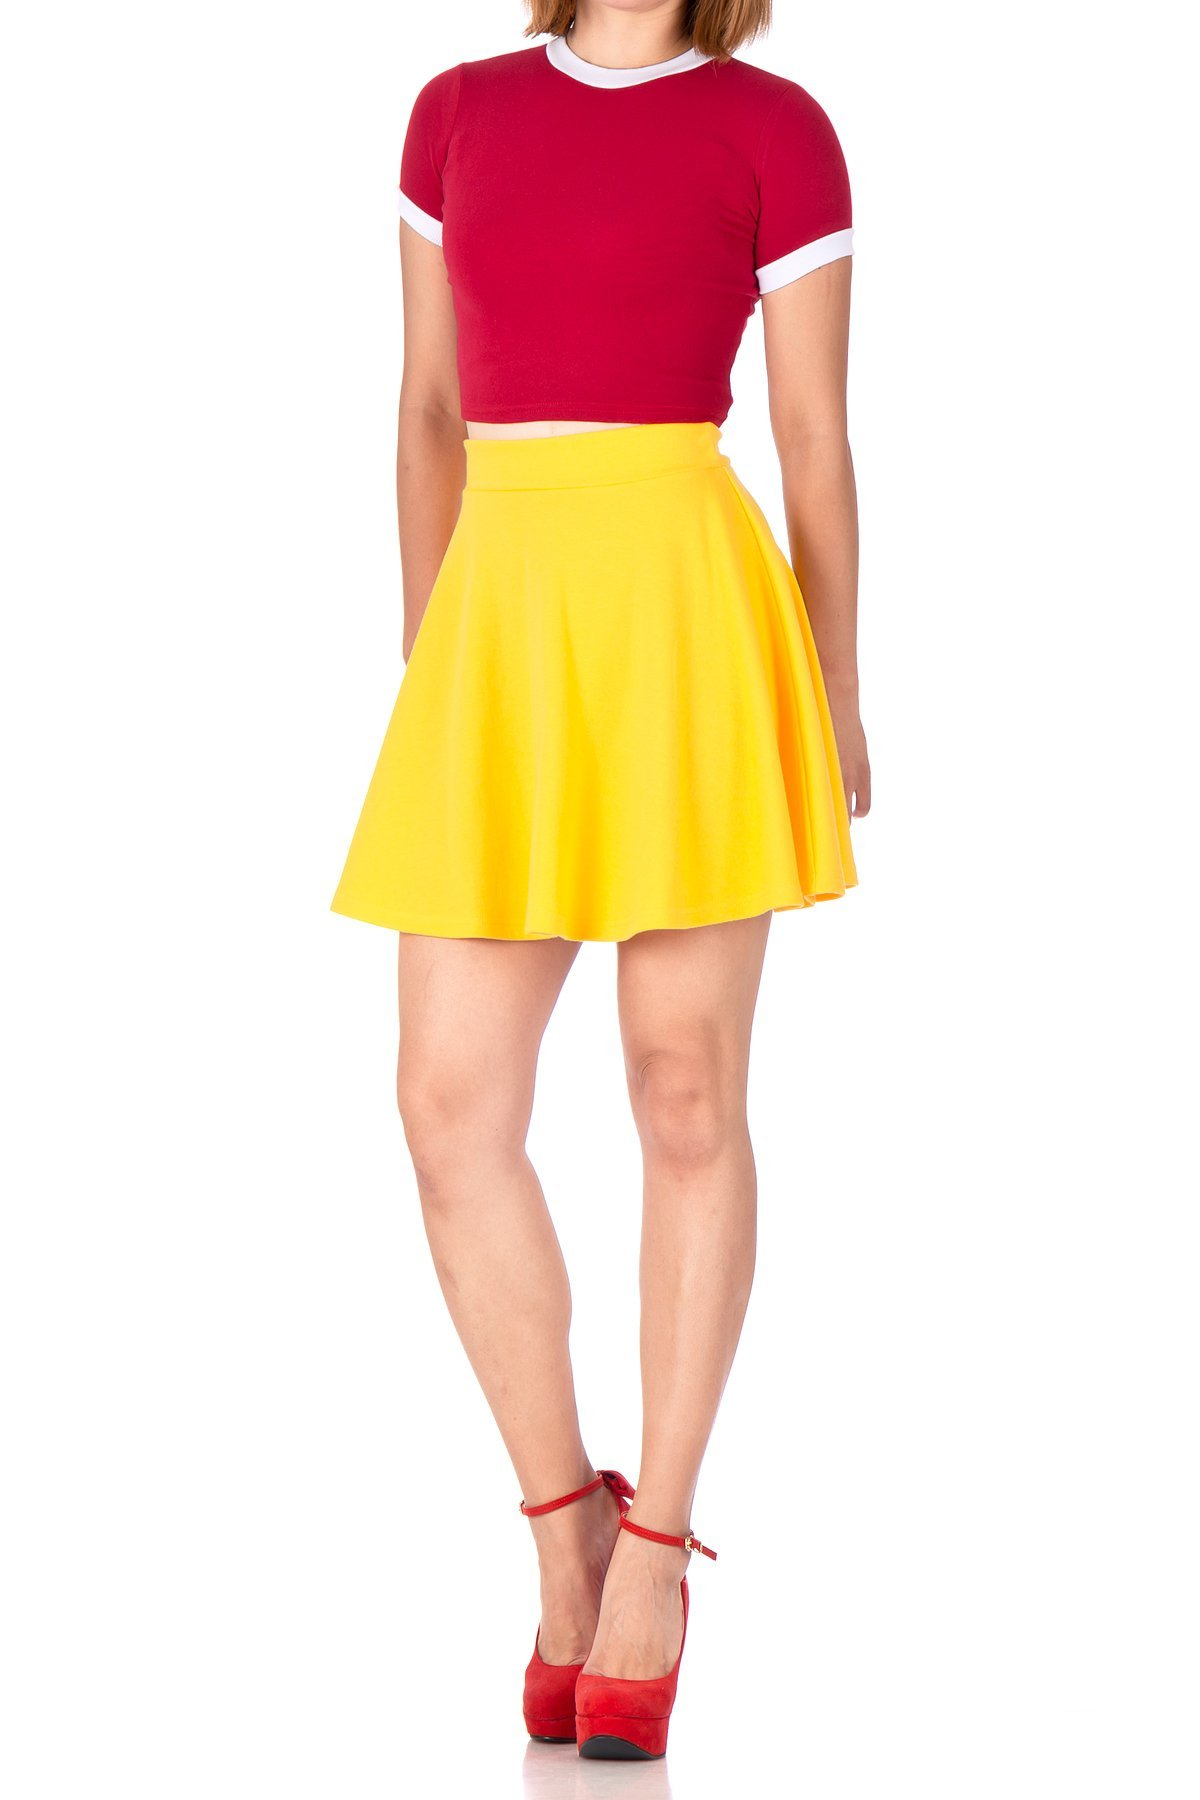 Basic Solid Stretchy Cotton High Waist A line Flared Skater Mini Skirt Yellow 03 1